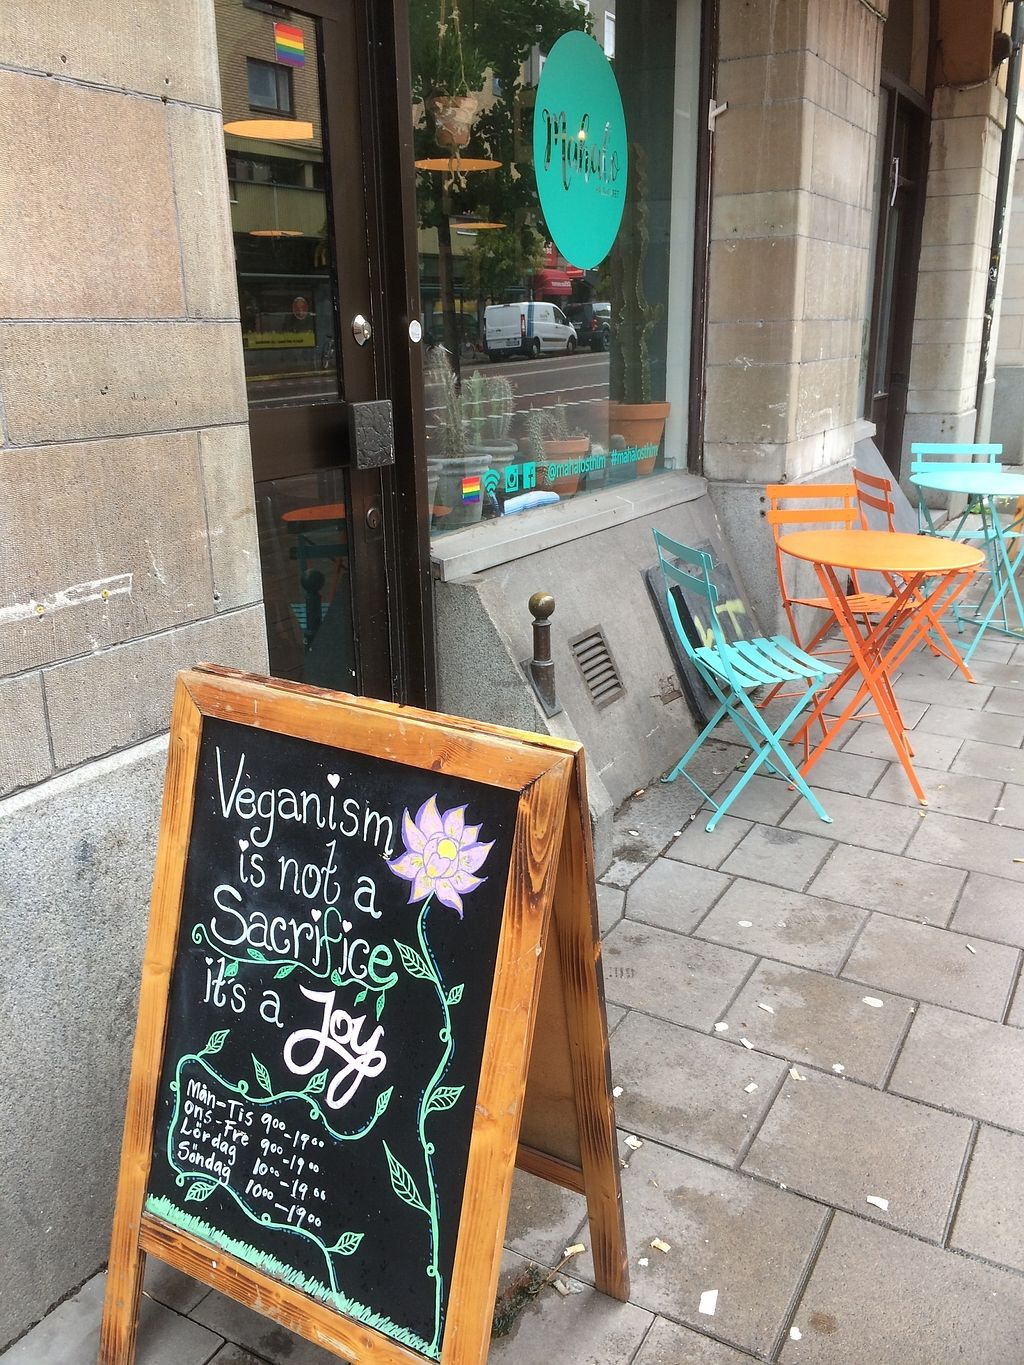 """Photo of Mahalo  by <a href=""""/members/profile/treemelody"""">treemelody</a> <br/>Outdoor seating (in chilly October!) and a beautiful sign  <br/> October 9, 2017  - <a href='/contact/abuse/image/66713/313708'>Report</a>"""